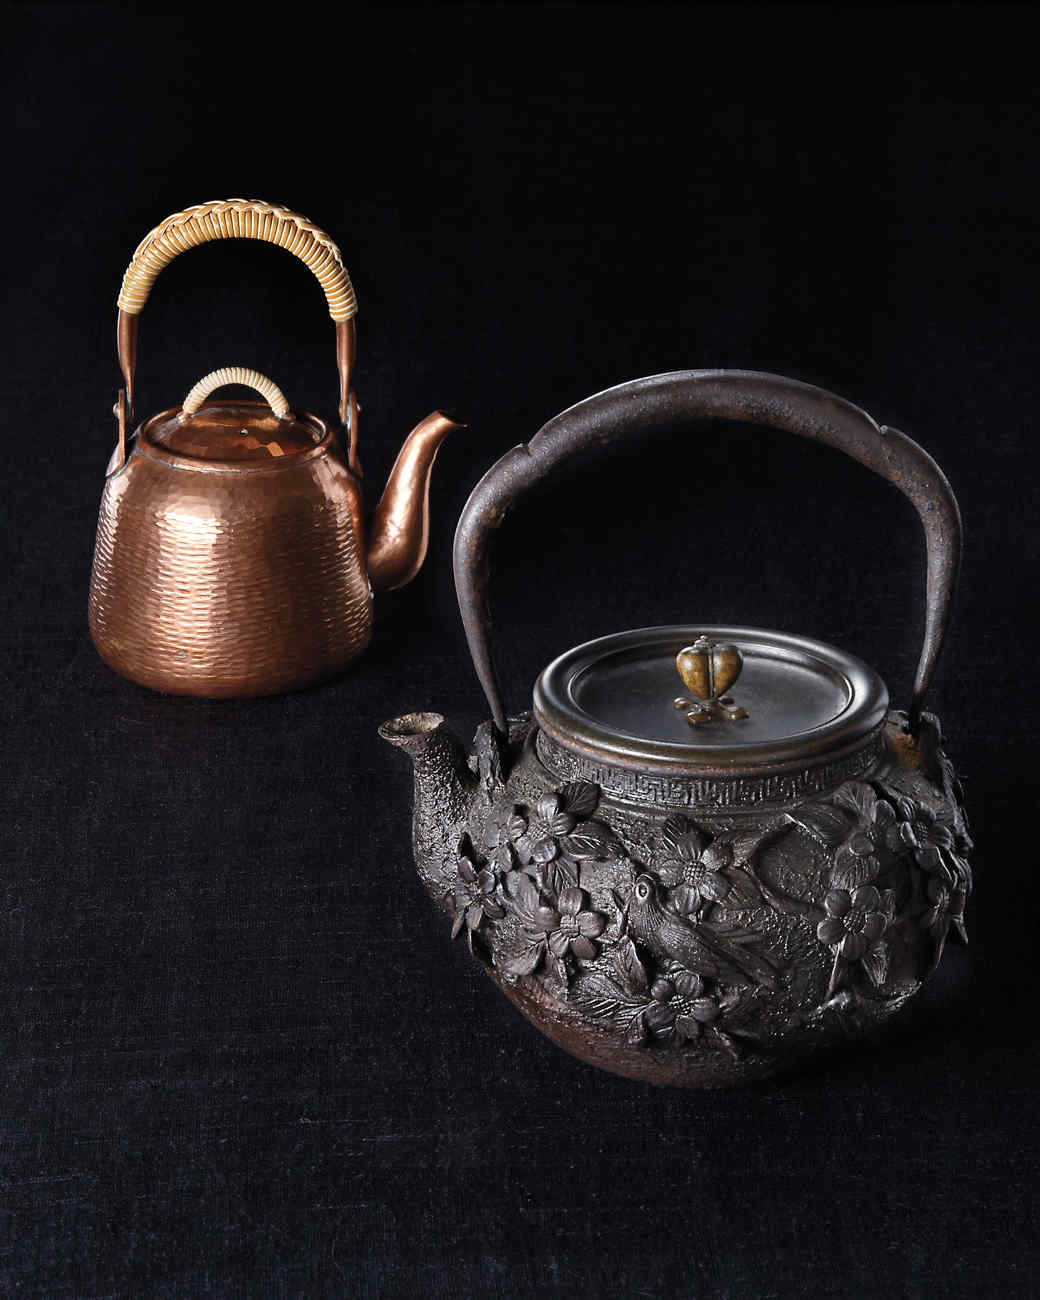 teapots-group-0104-md110378.jpg